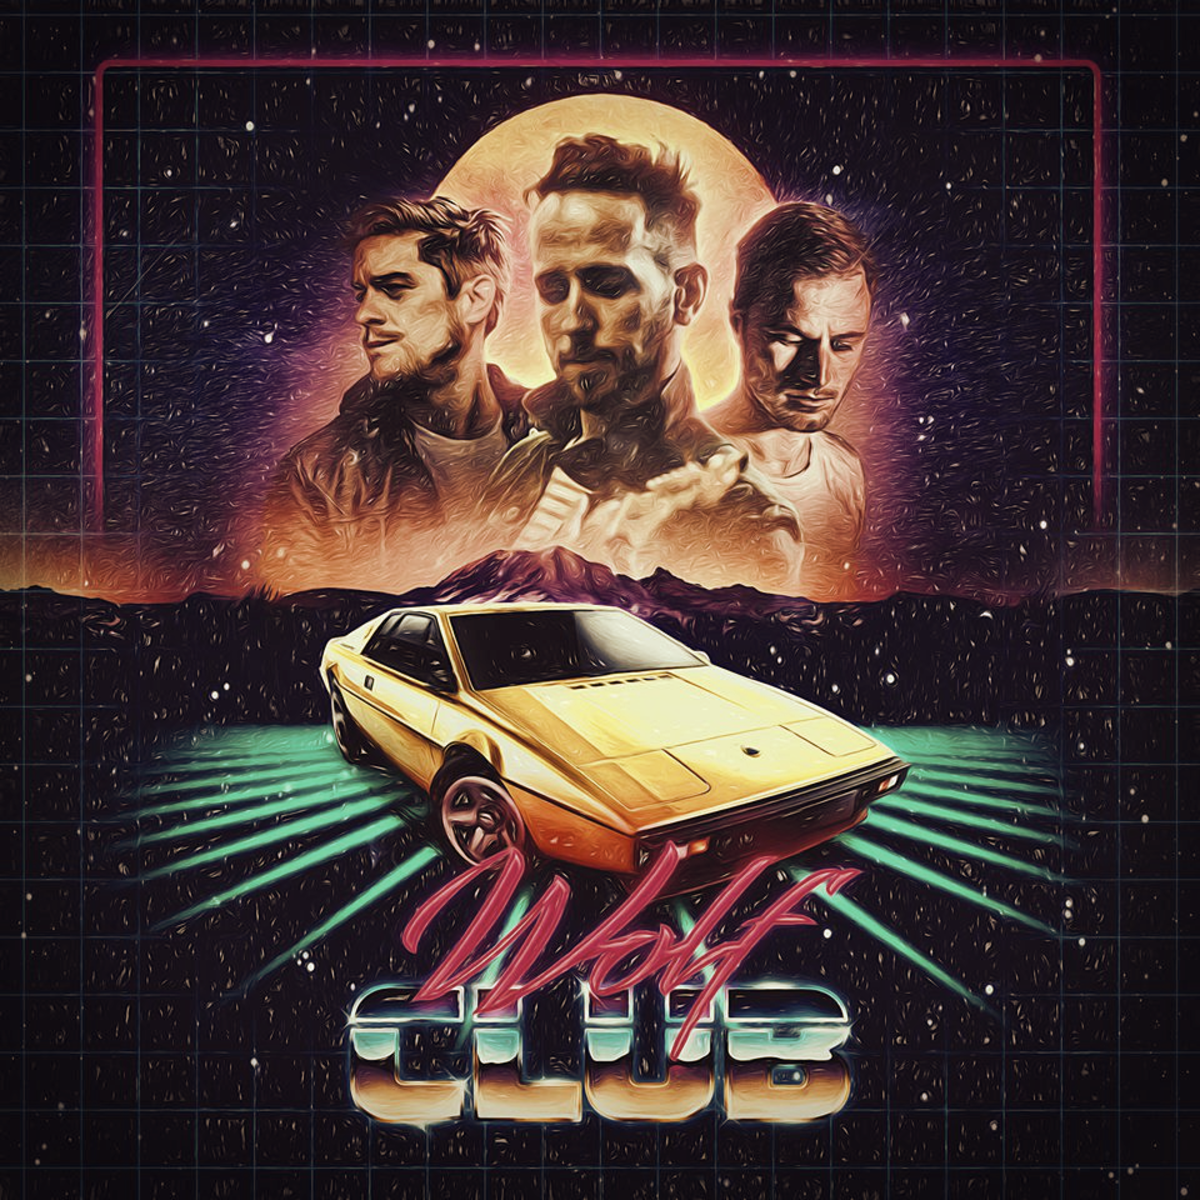 an-interview-with-steven-wilcoxson-from-synthwave-band-wolf-club